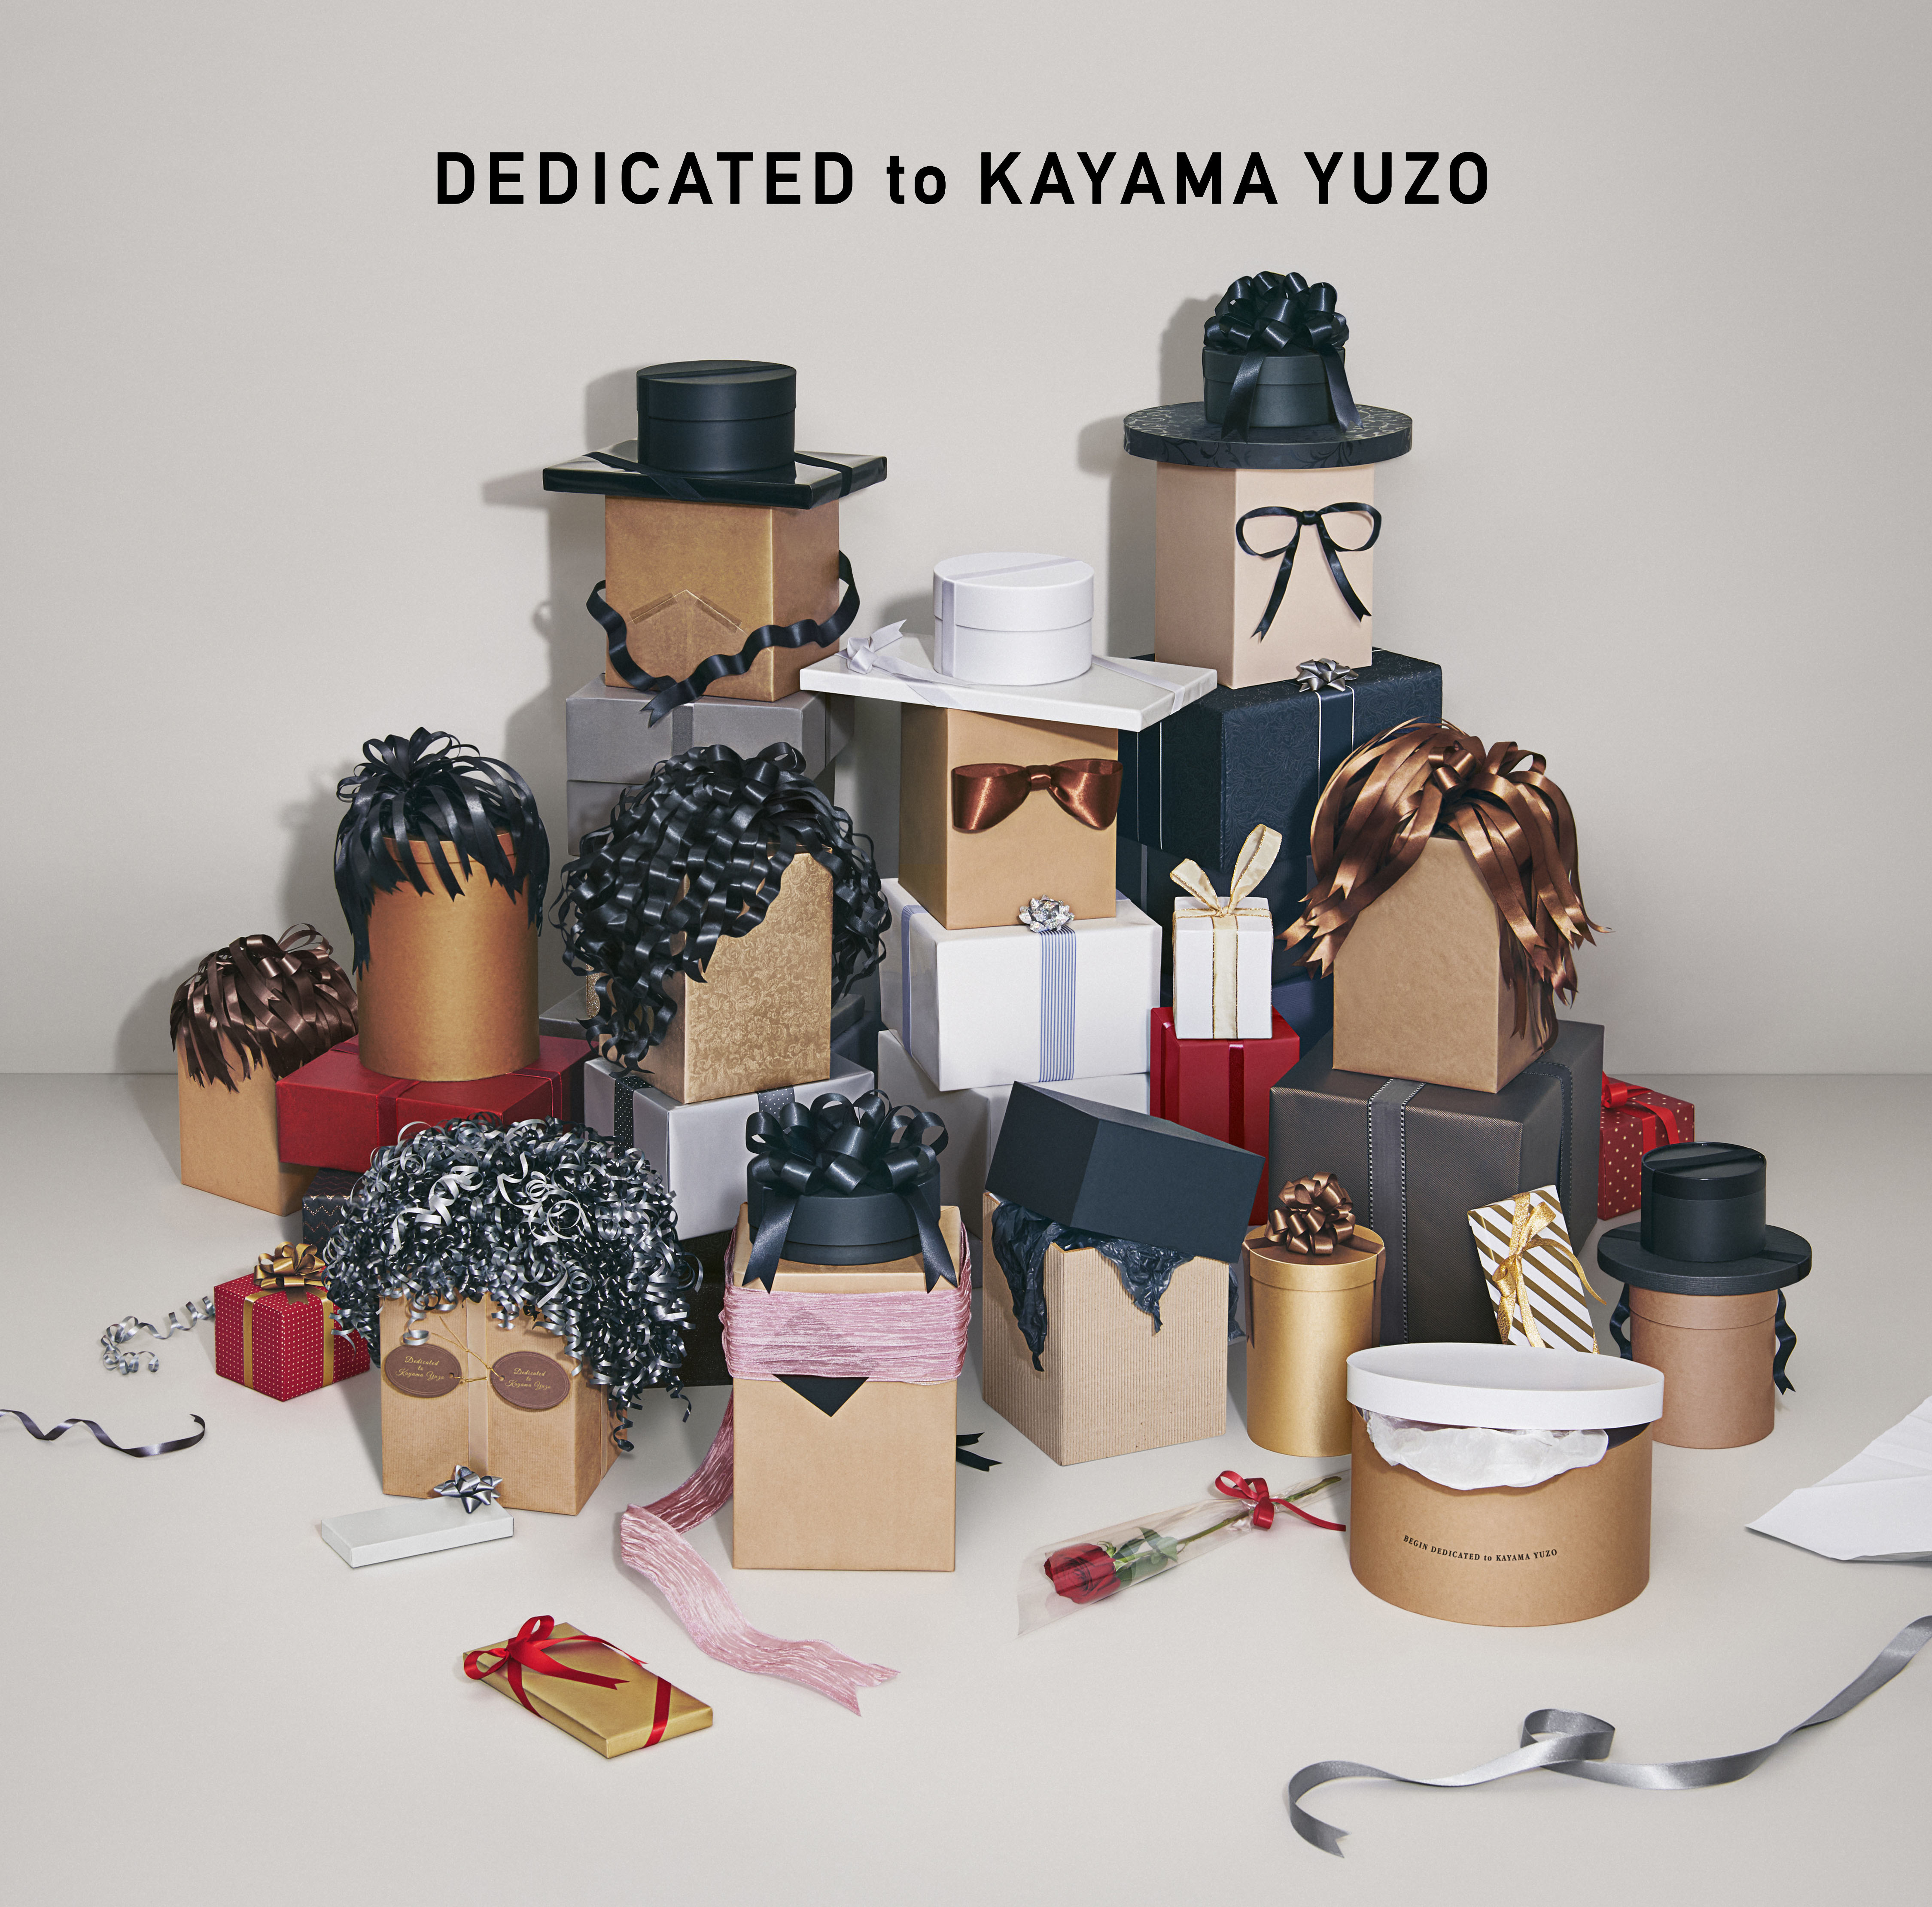 加山雄三「DEDICATED to KAYAMA YUZO」